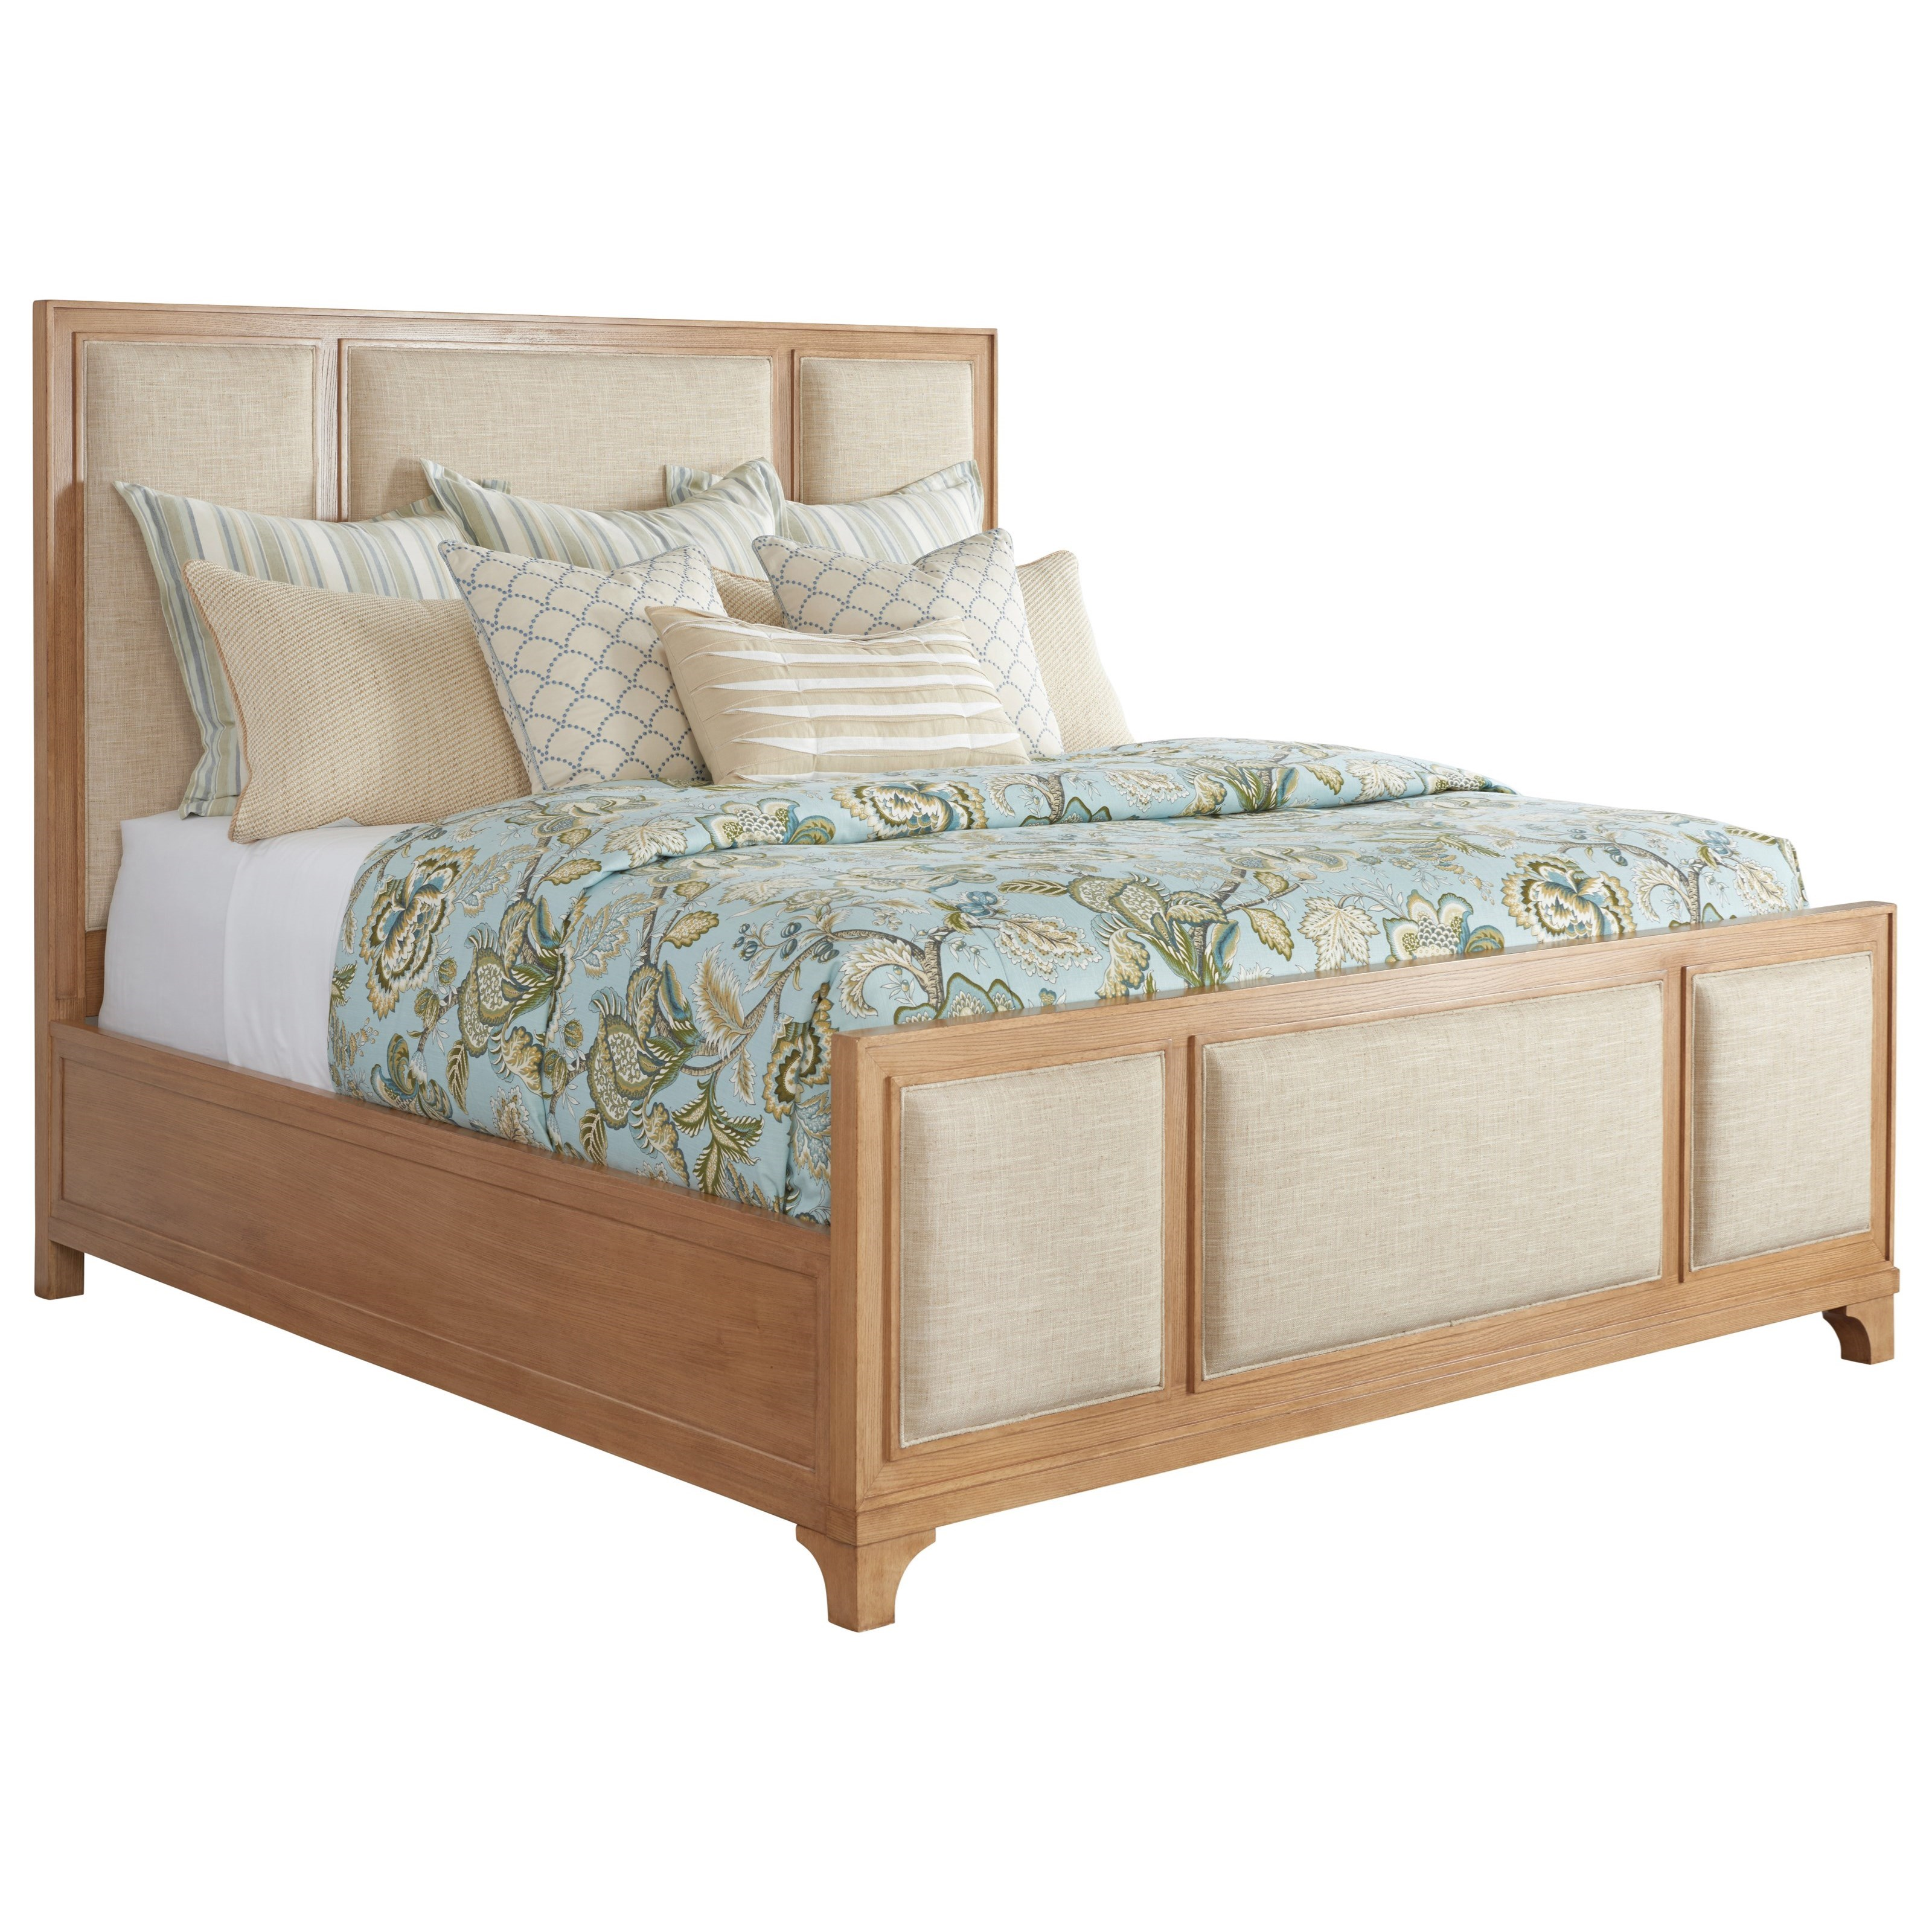 Newport Crystal Cove Upholstered Panel Bed 6/6 King by Barclay Butera at Baer's Furniture